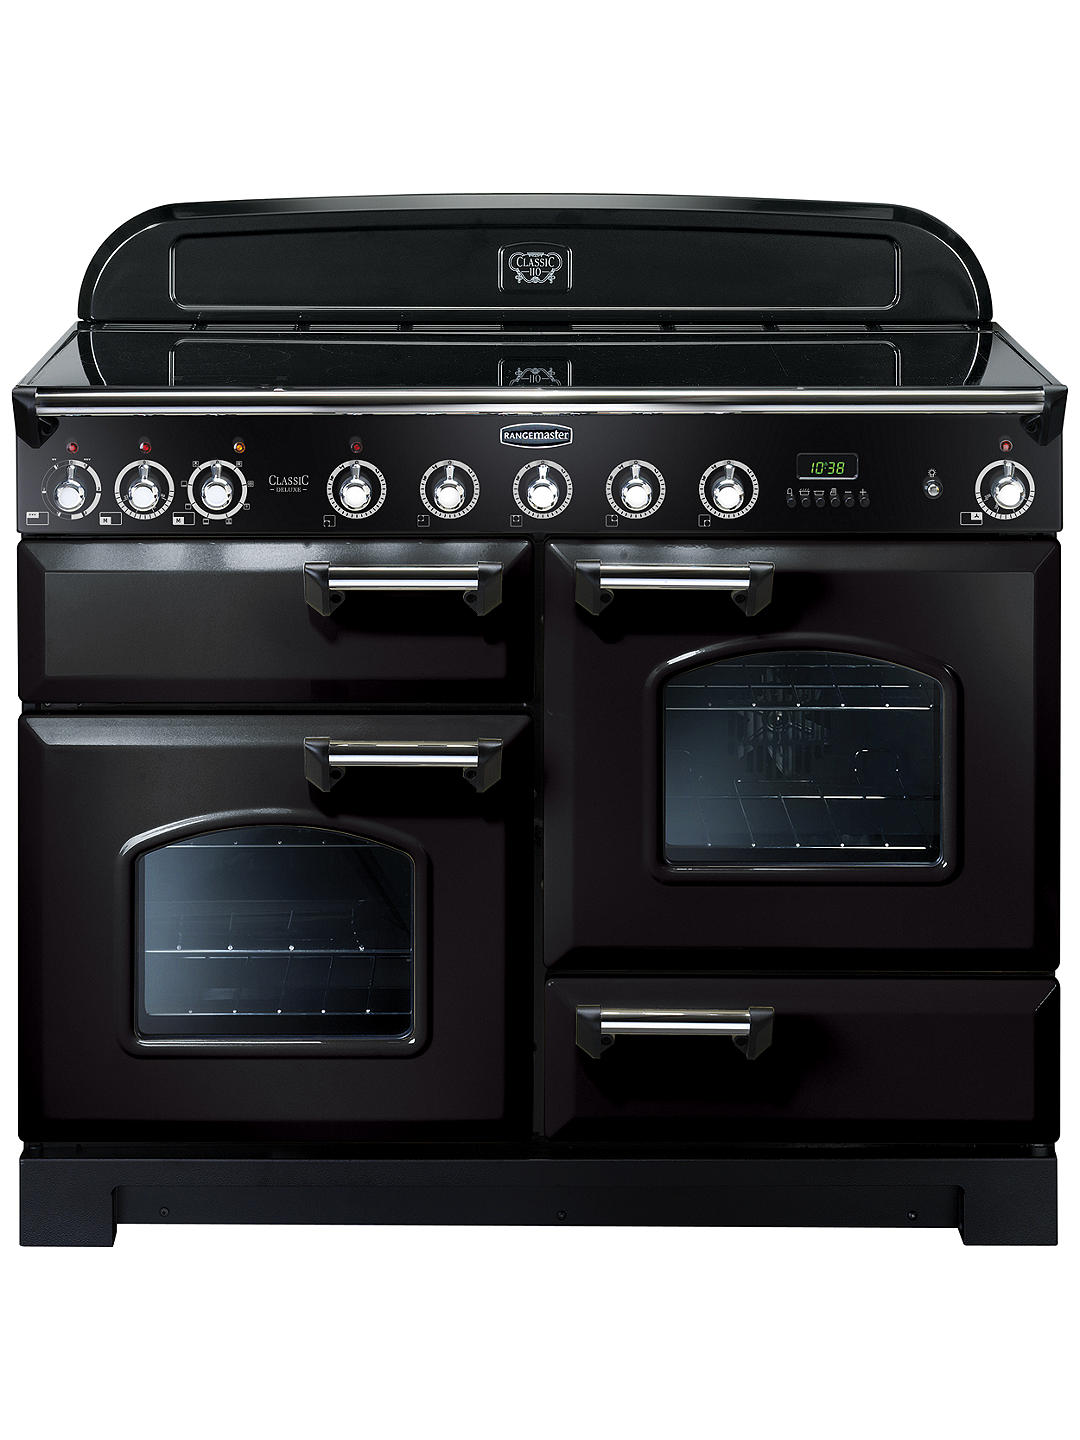 Buy Rangemaster Classic Deluxe 110 Induction Hob Range Cooker, Black/Chrome Trim Online at johnlewis.com